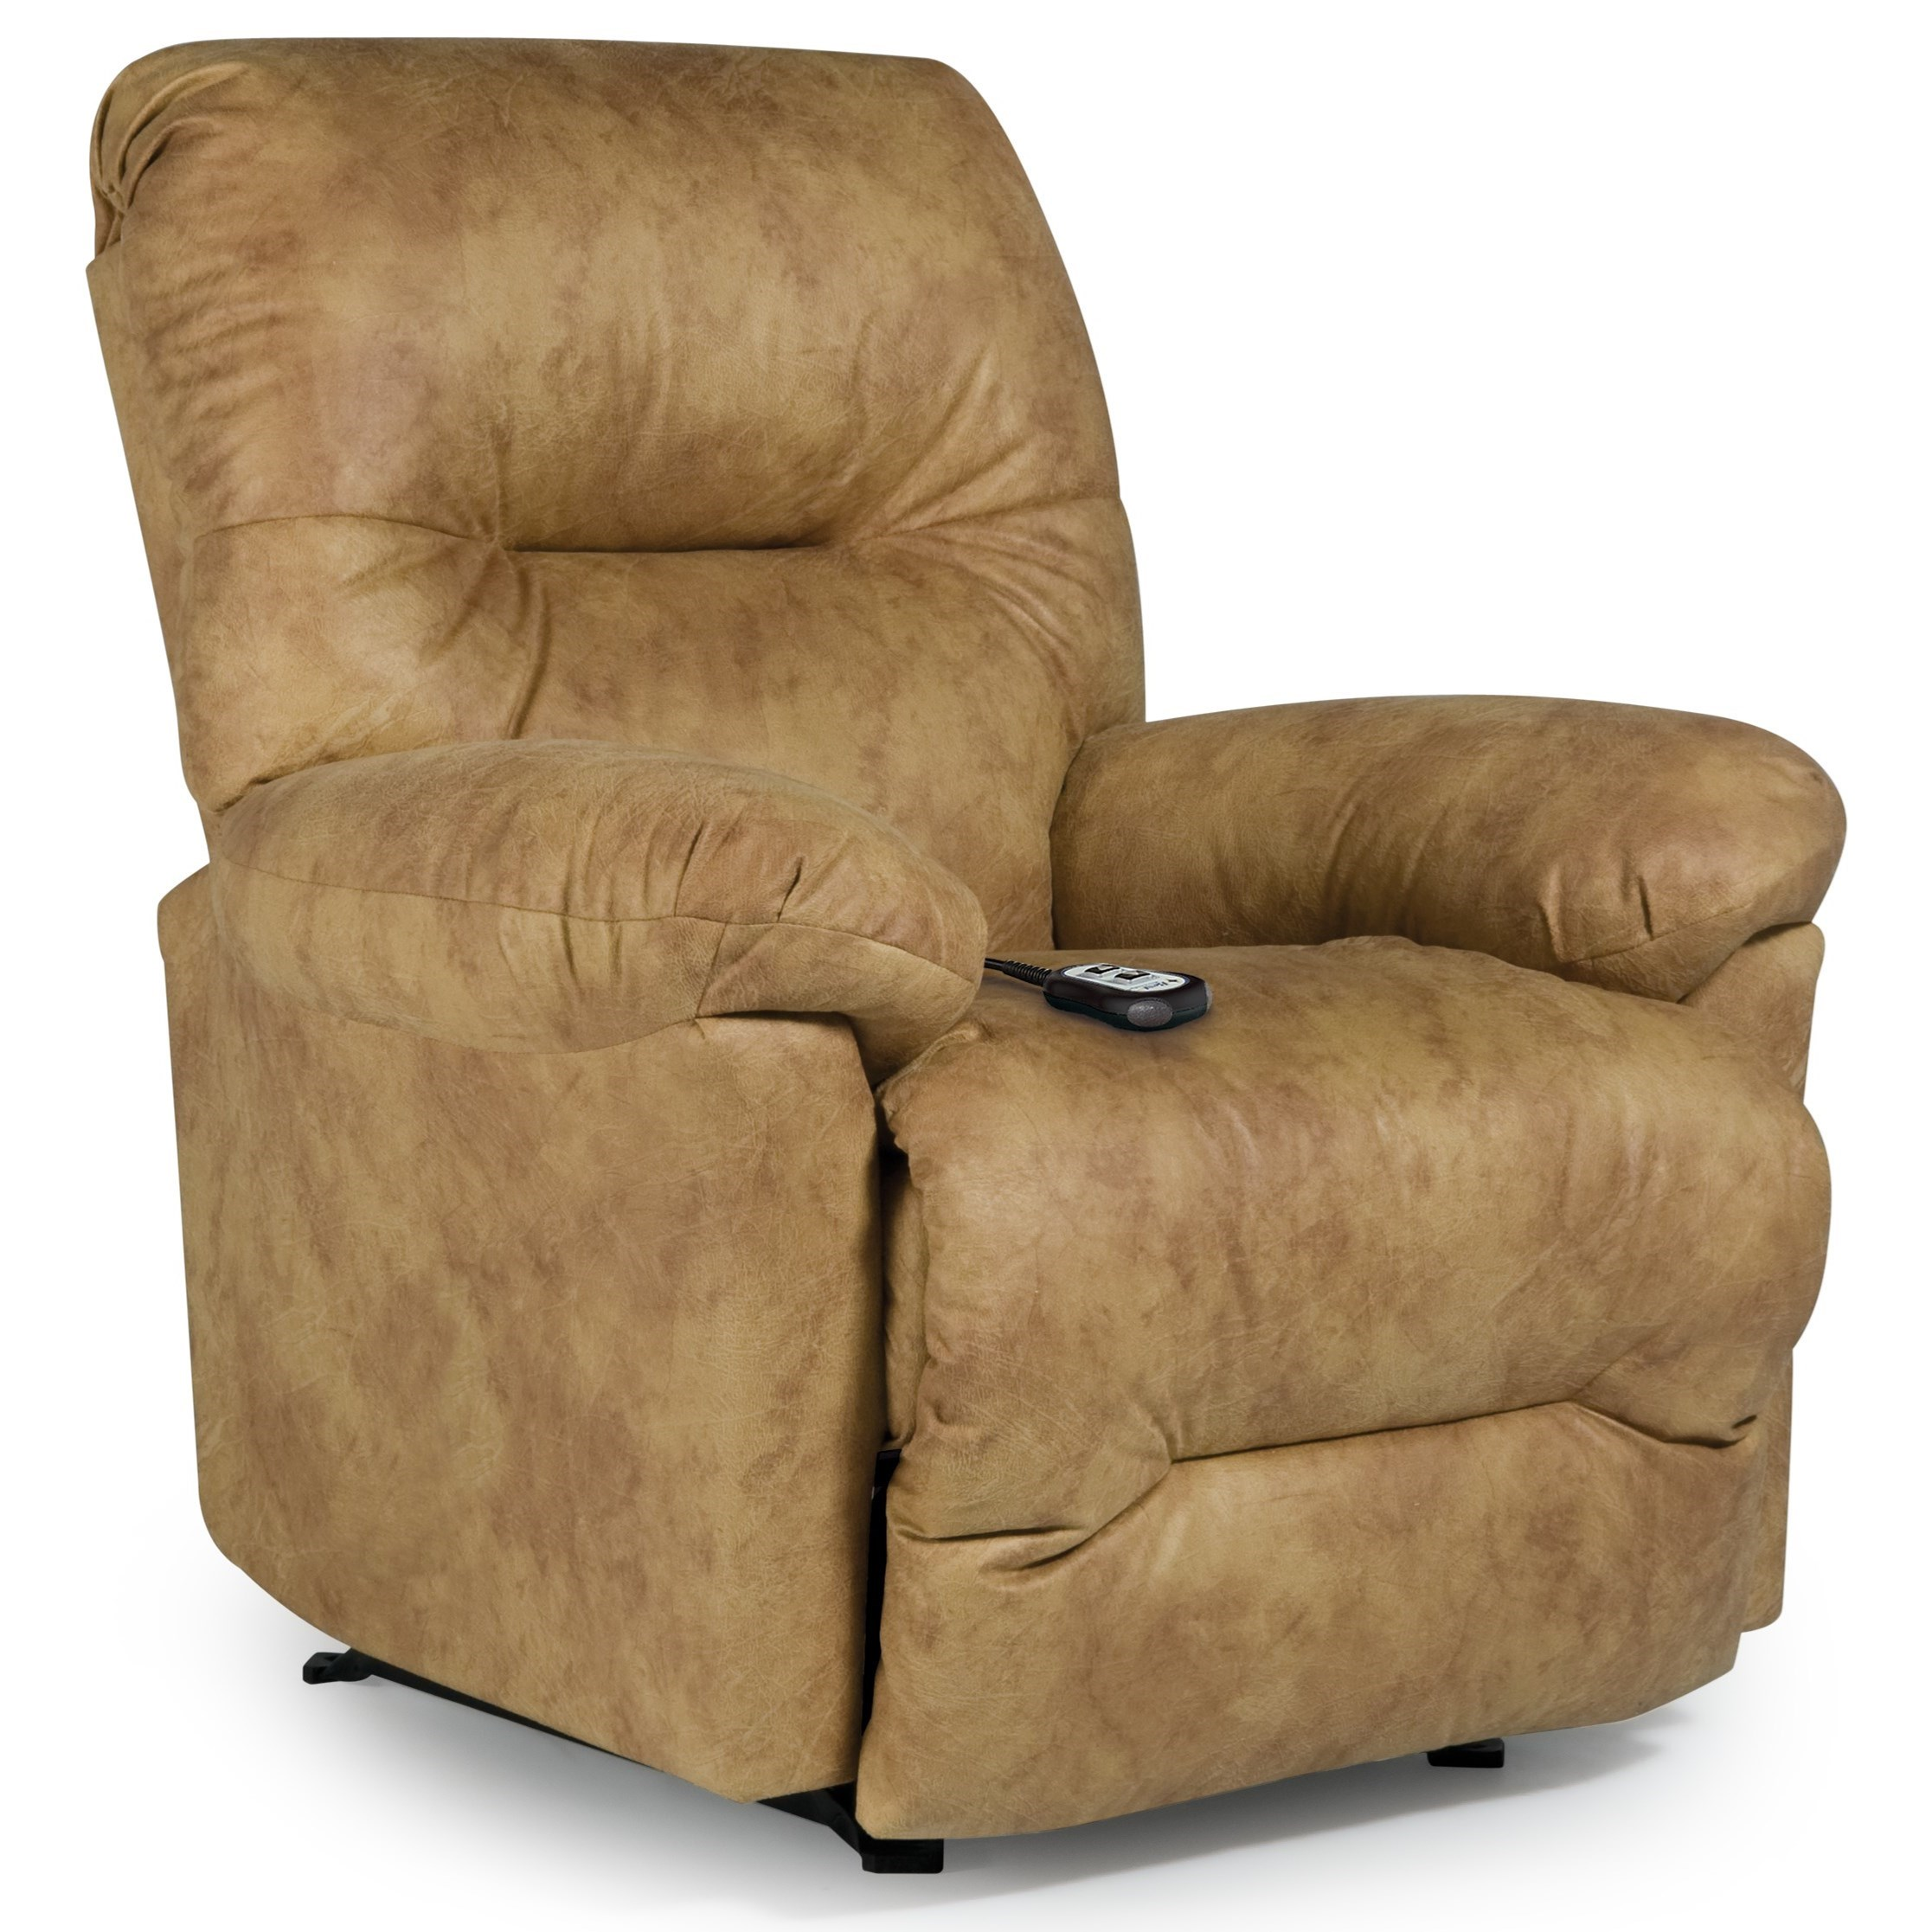 Best Home Furnishings Recliners - Medium Rodney Power Space Saver Recliner - Item Number: 6NP24